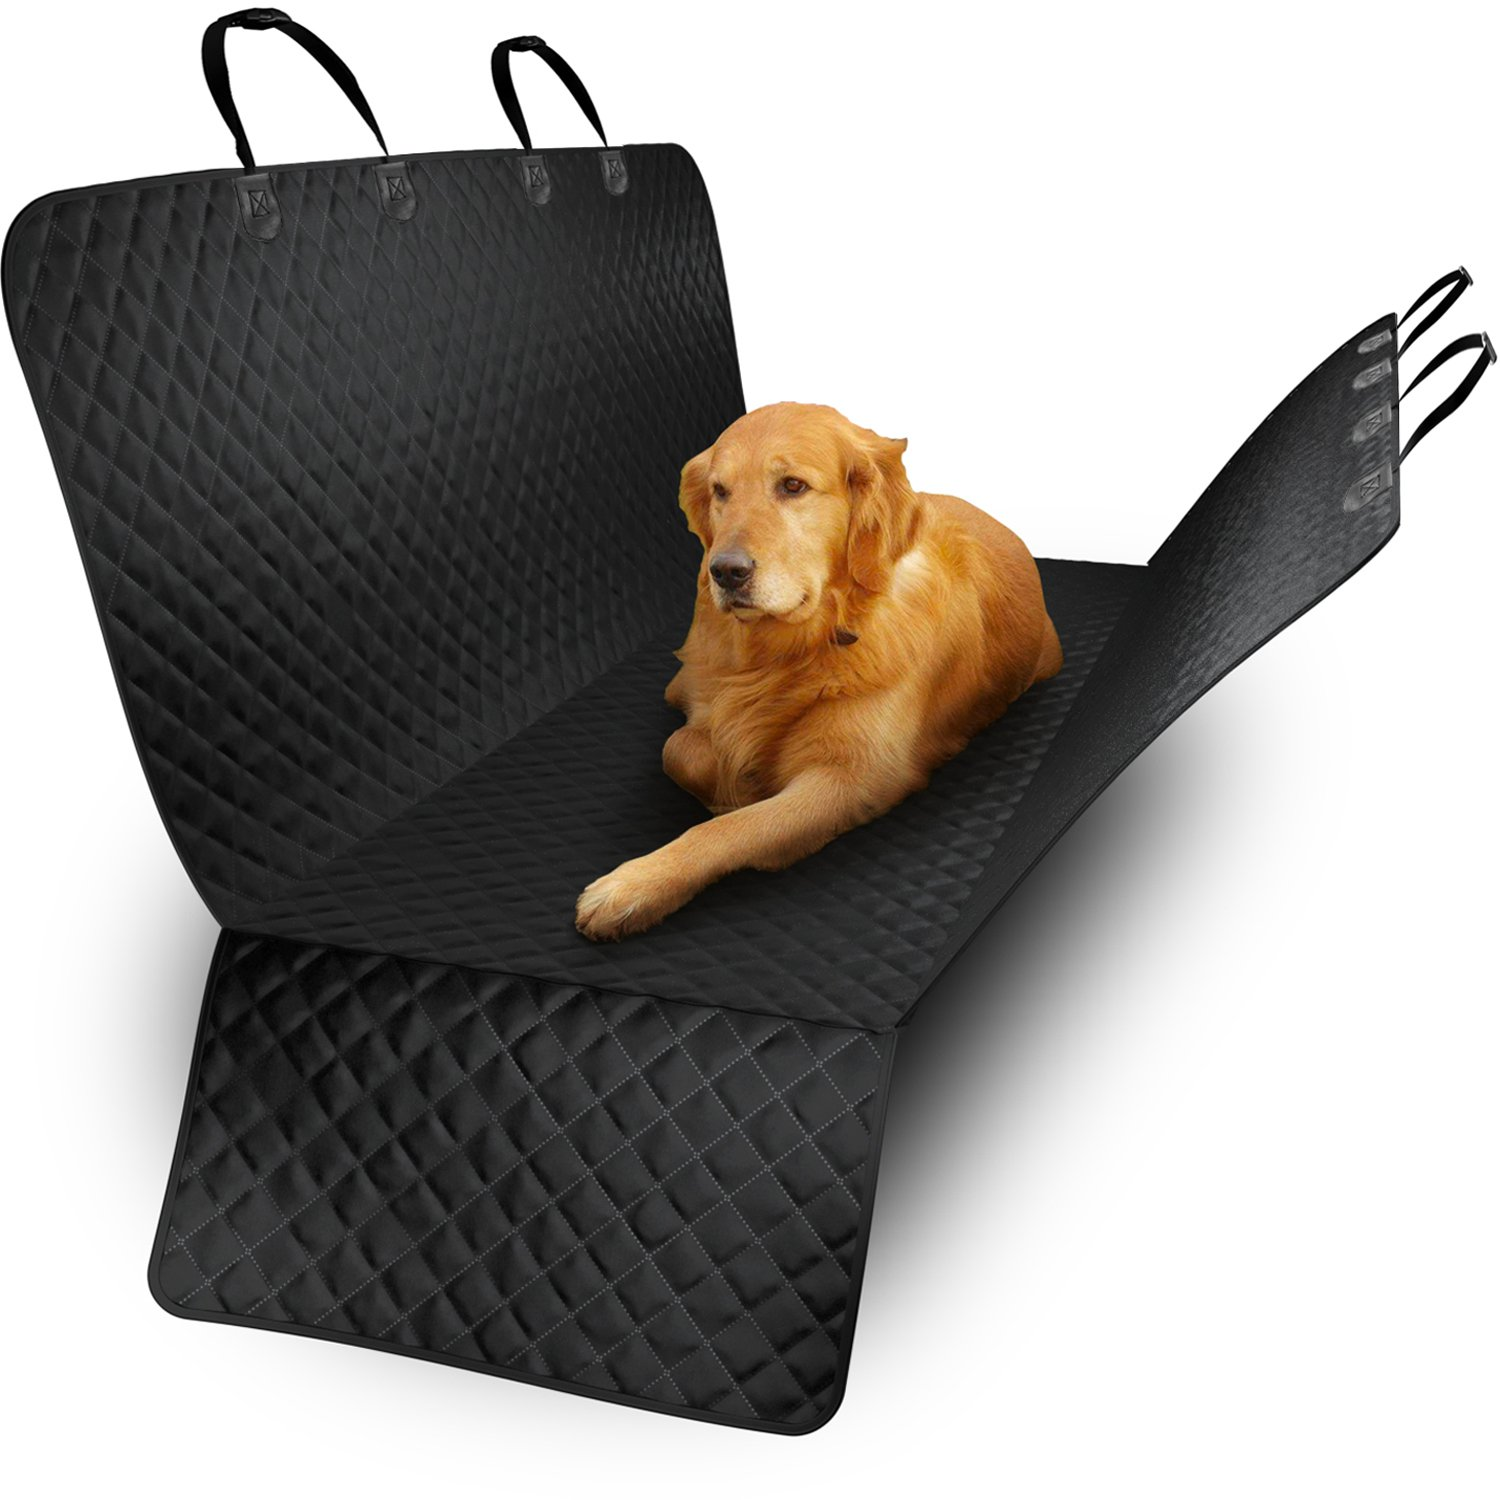 Pet Back or Front Seat Cover - Dog, Cat Protector for Car, SUV, Truck Dog, Hammock Convertible - Durable, Quilted, Non-Slip Material - Bench Cover with Extra Side Flaps (Back)